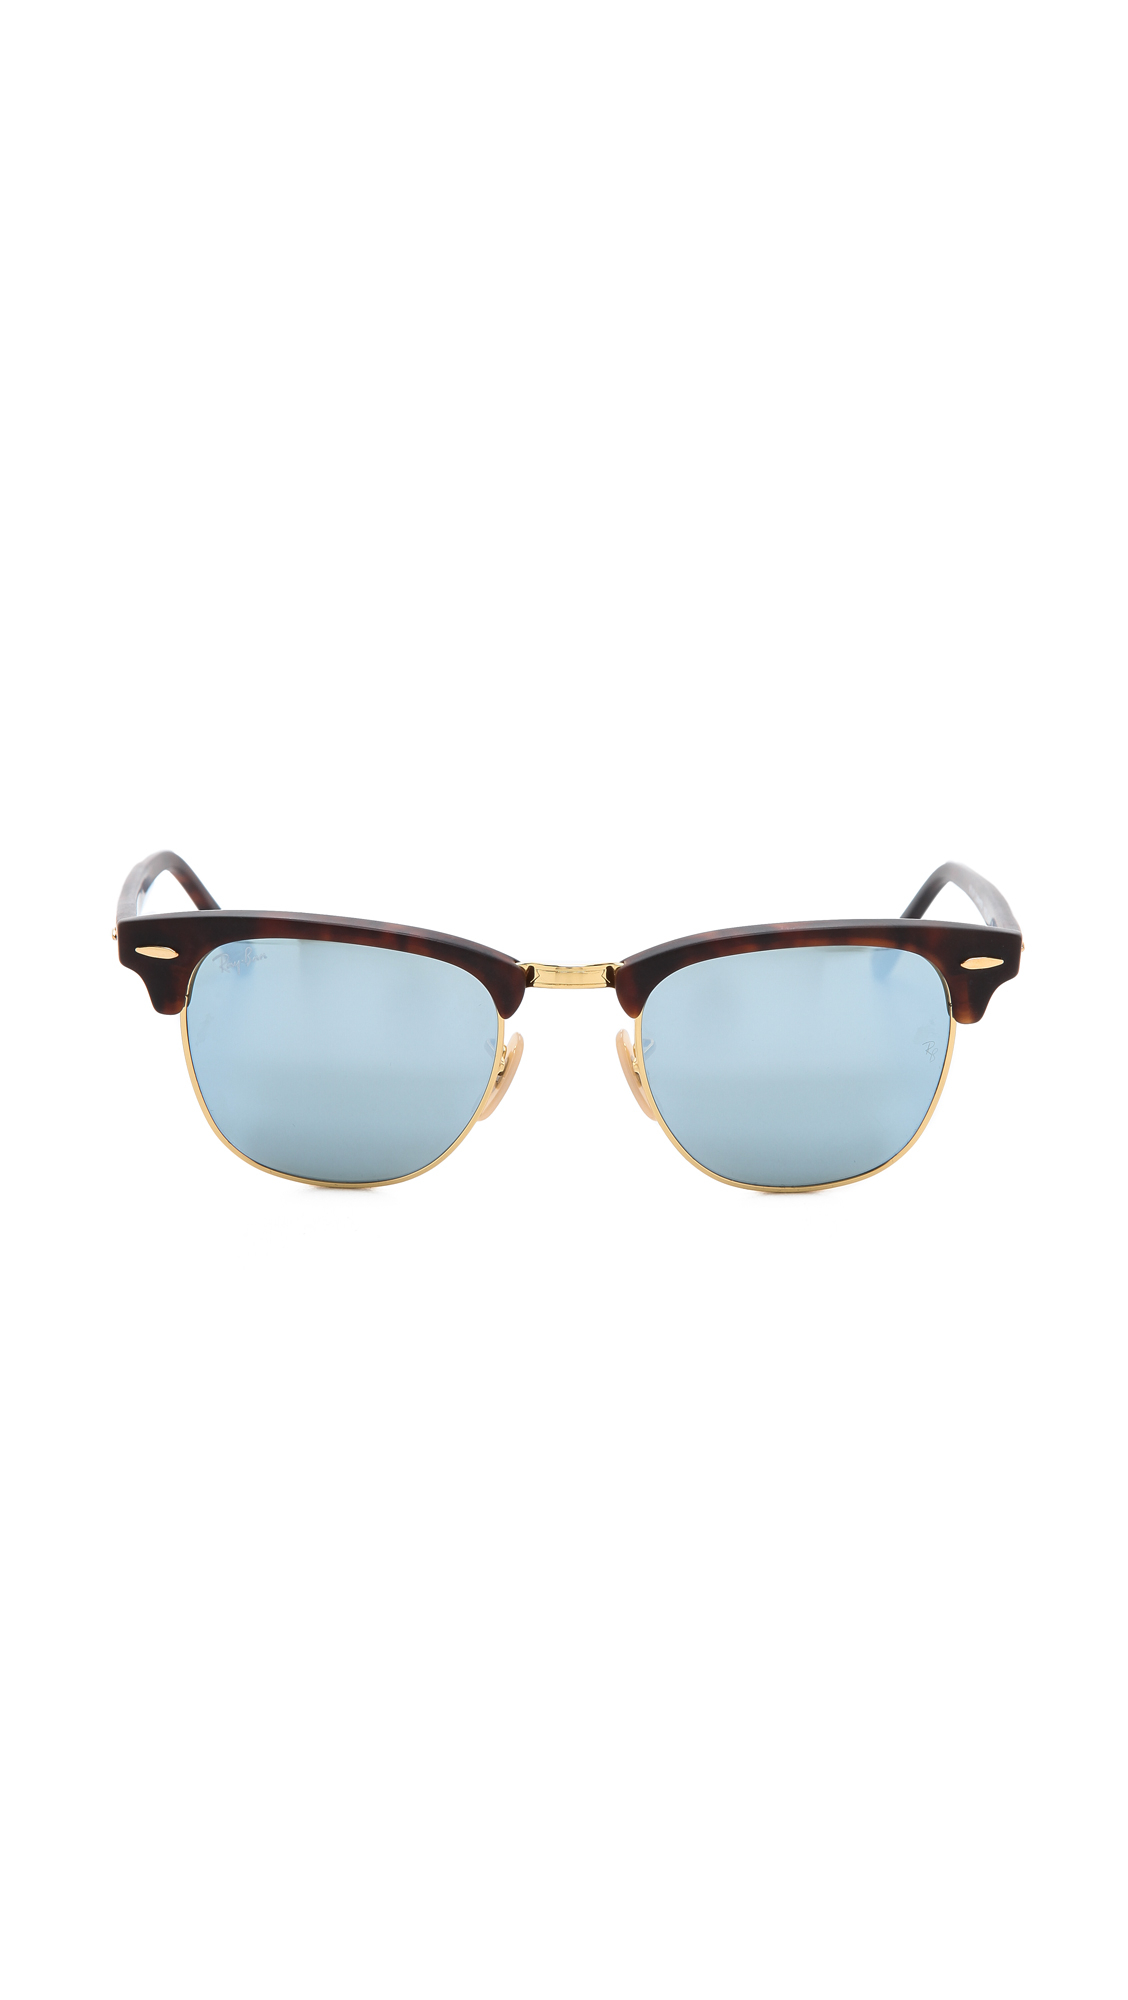 Ray Ban Mirrored Clubmaster Sunglasses Sand Havana Grey